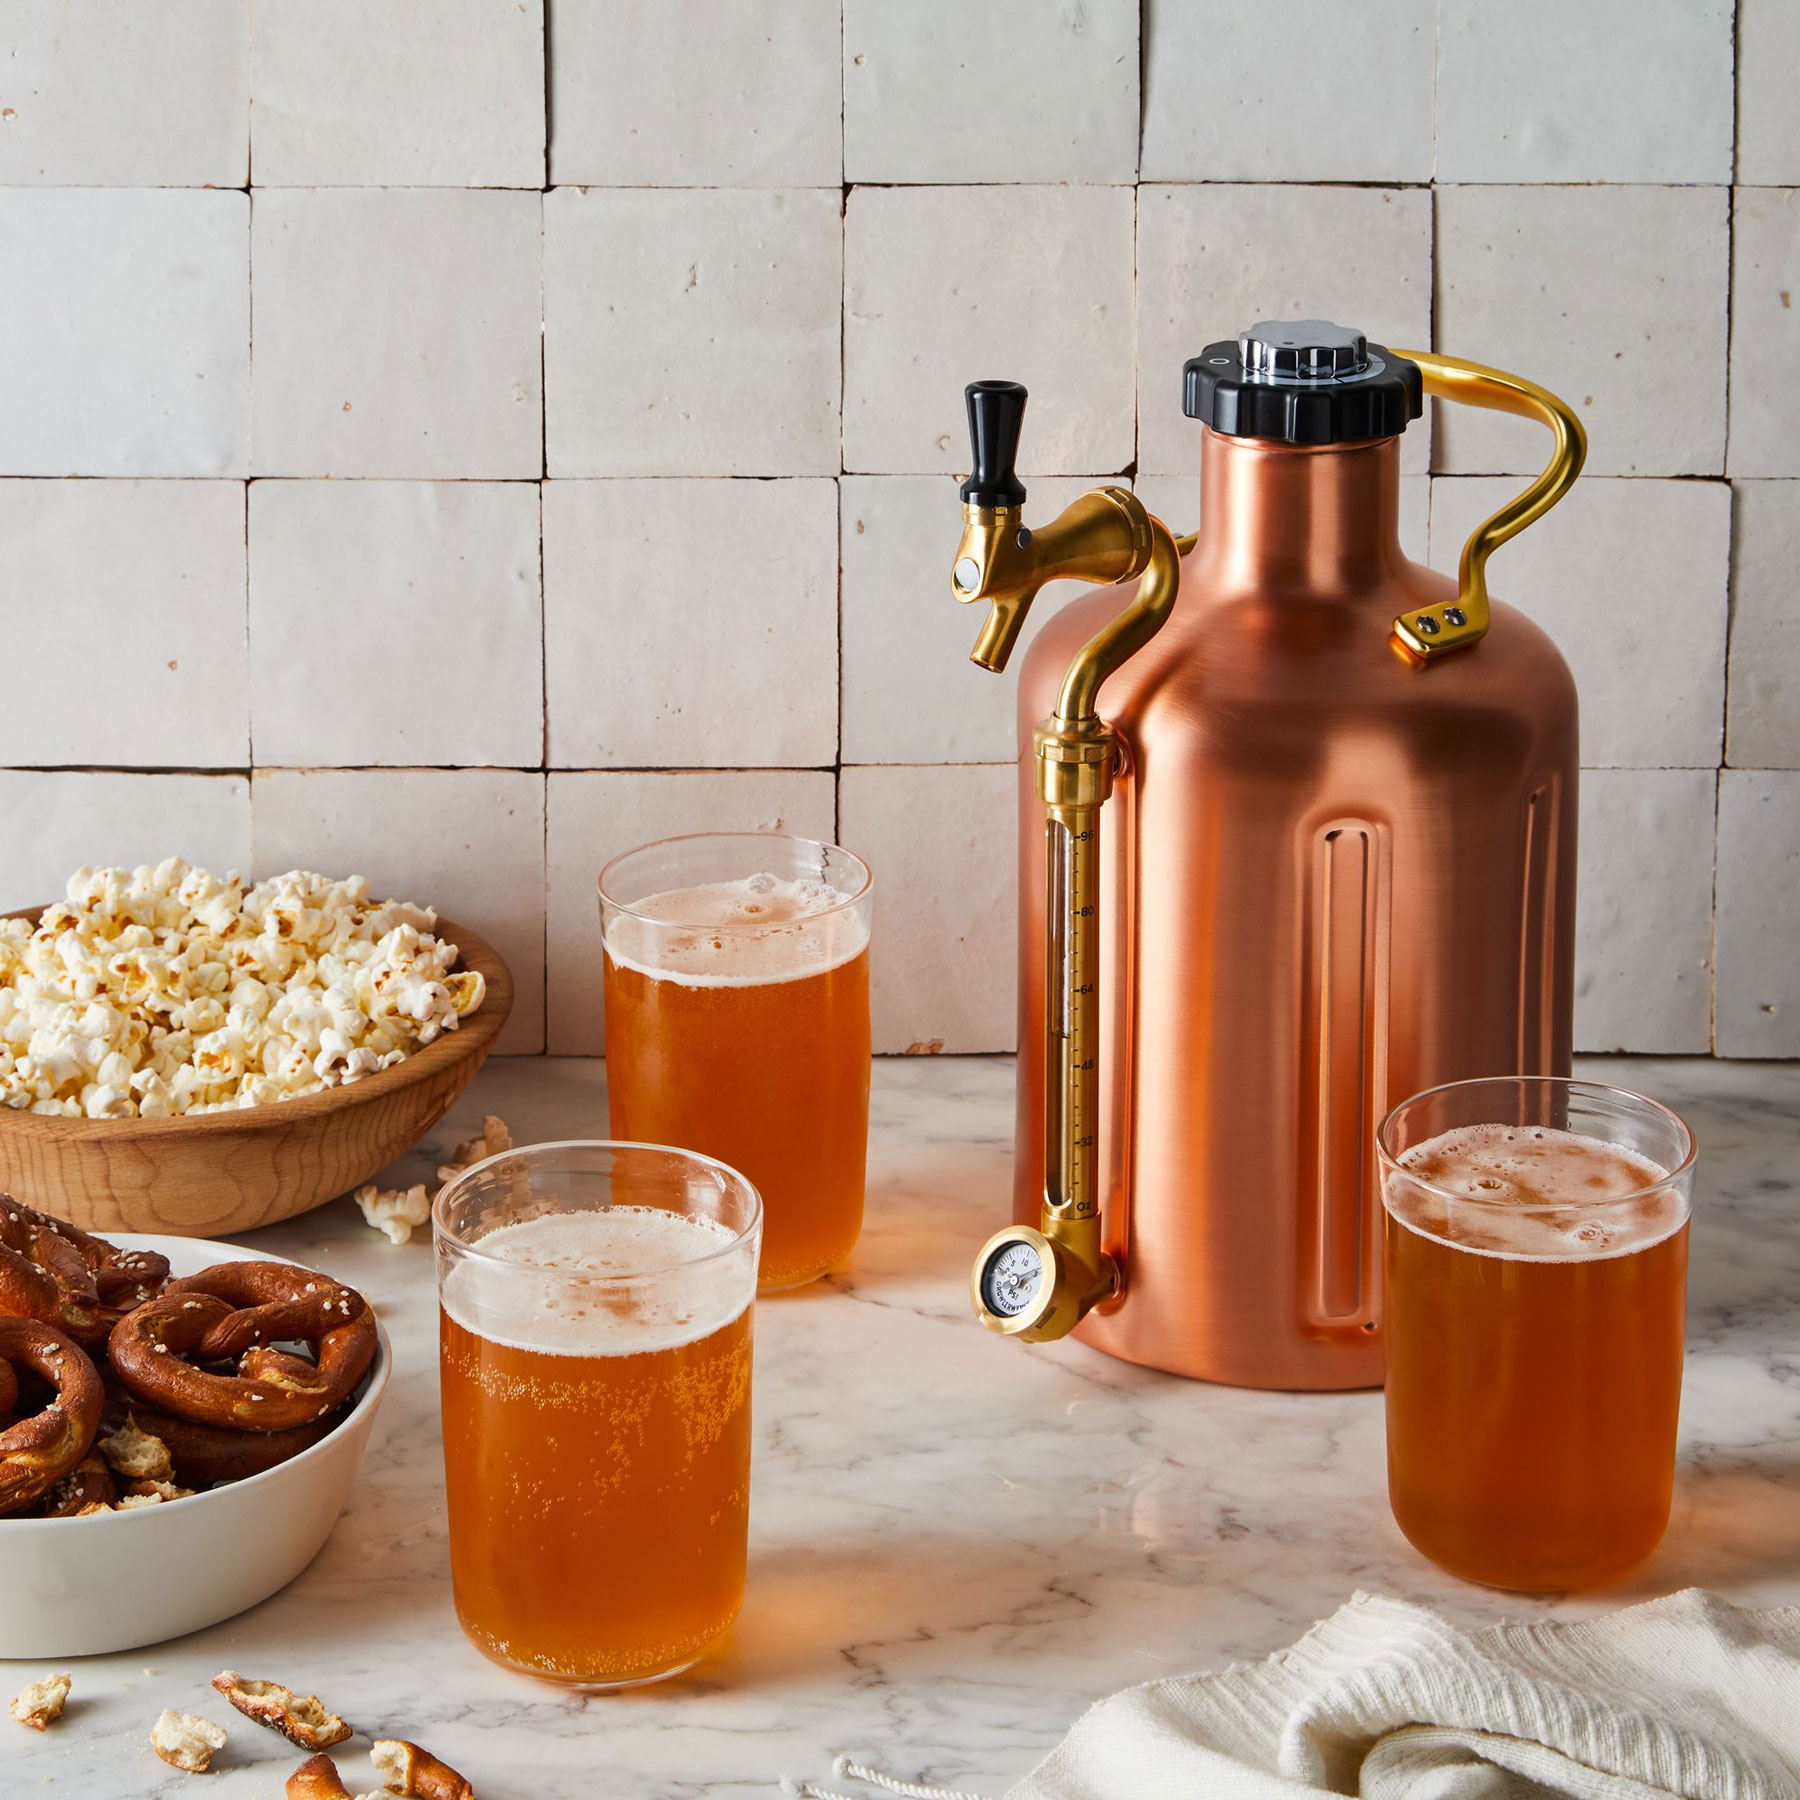 6 Clever Items (7/10/20) - Pressurized growler